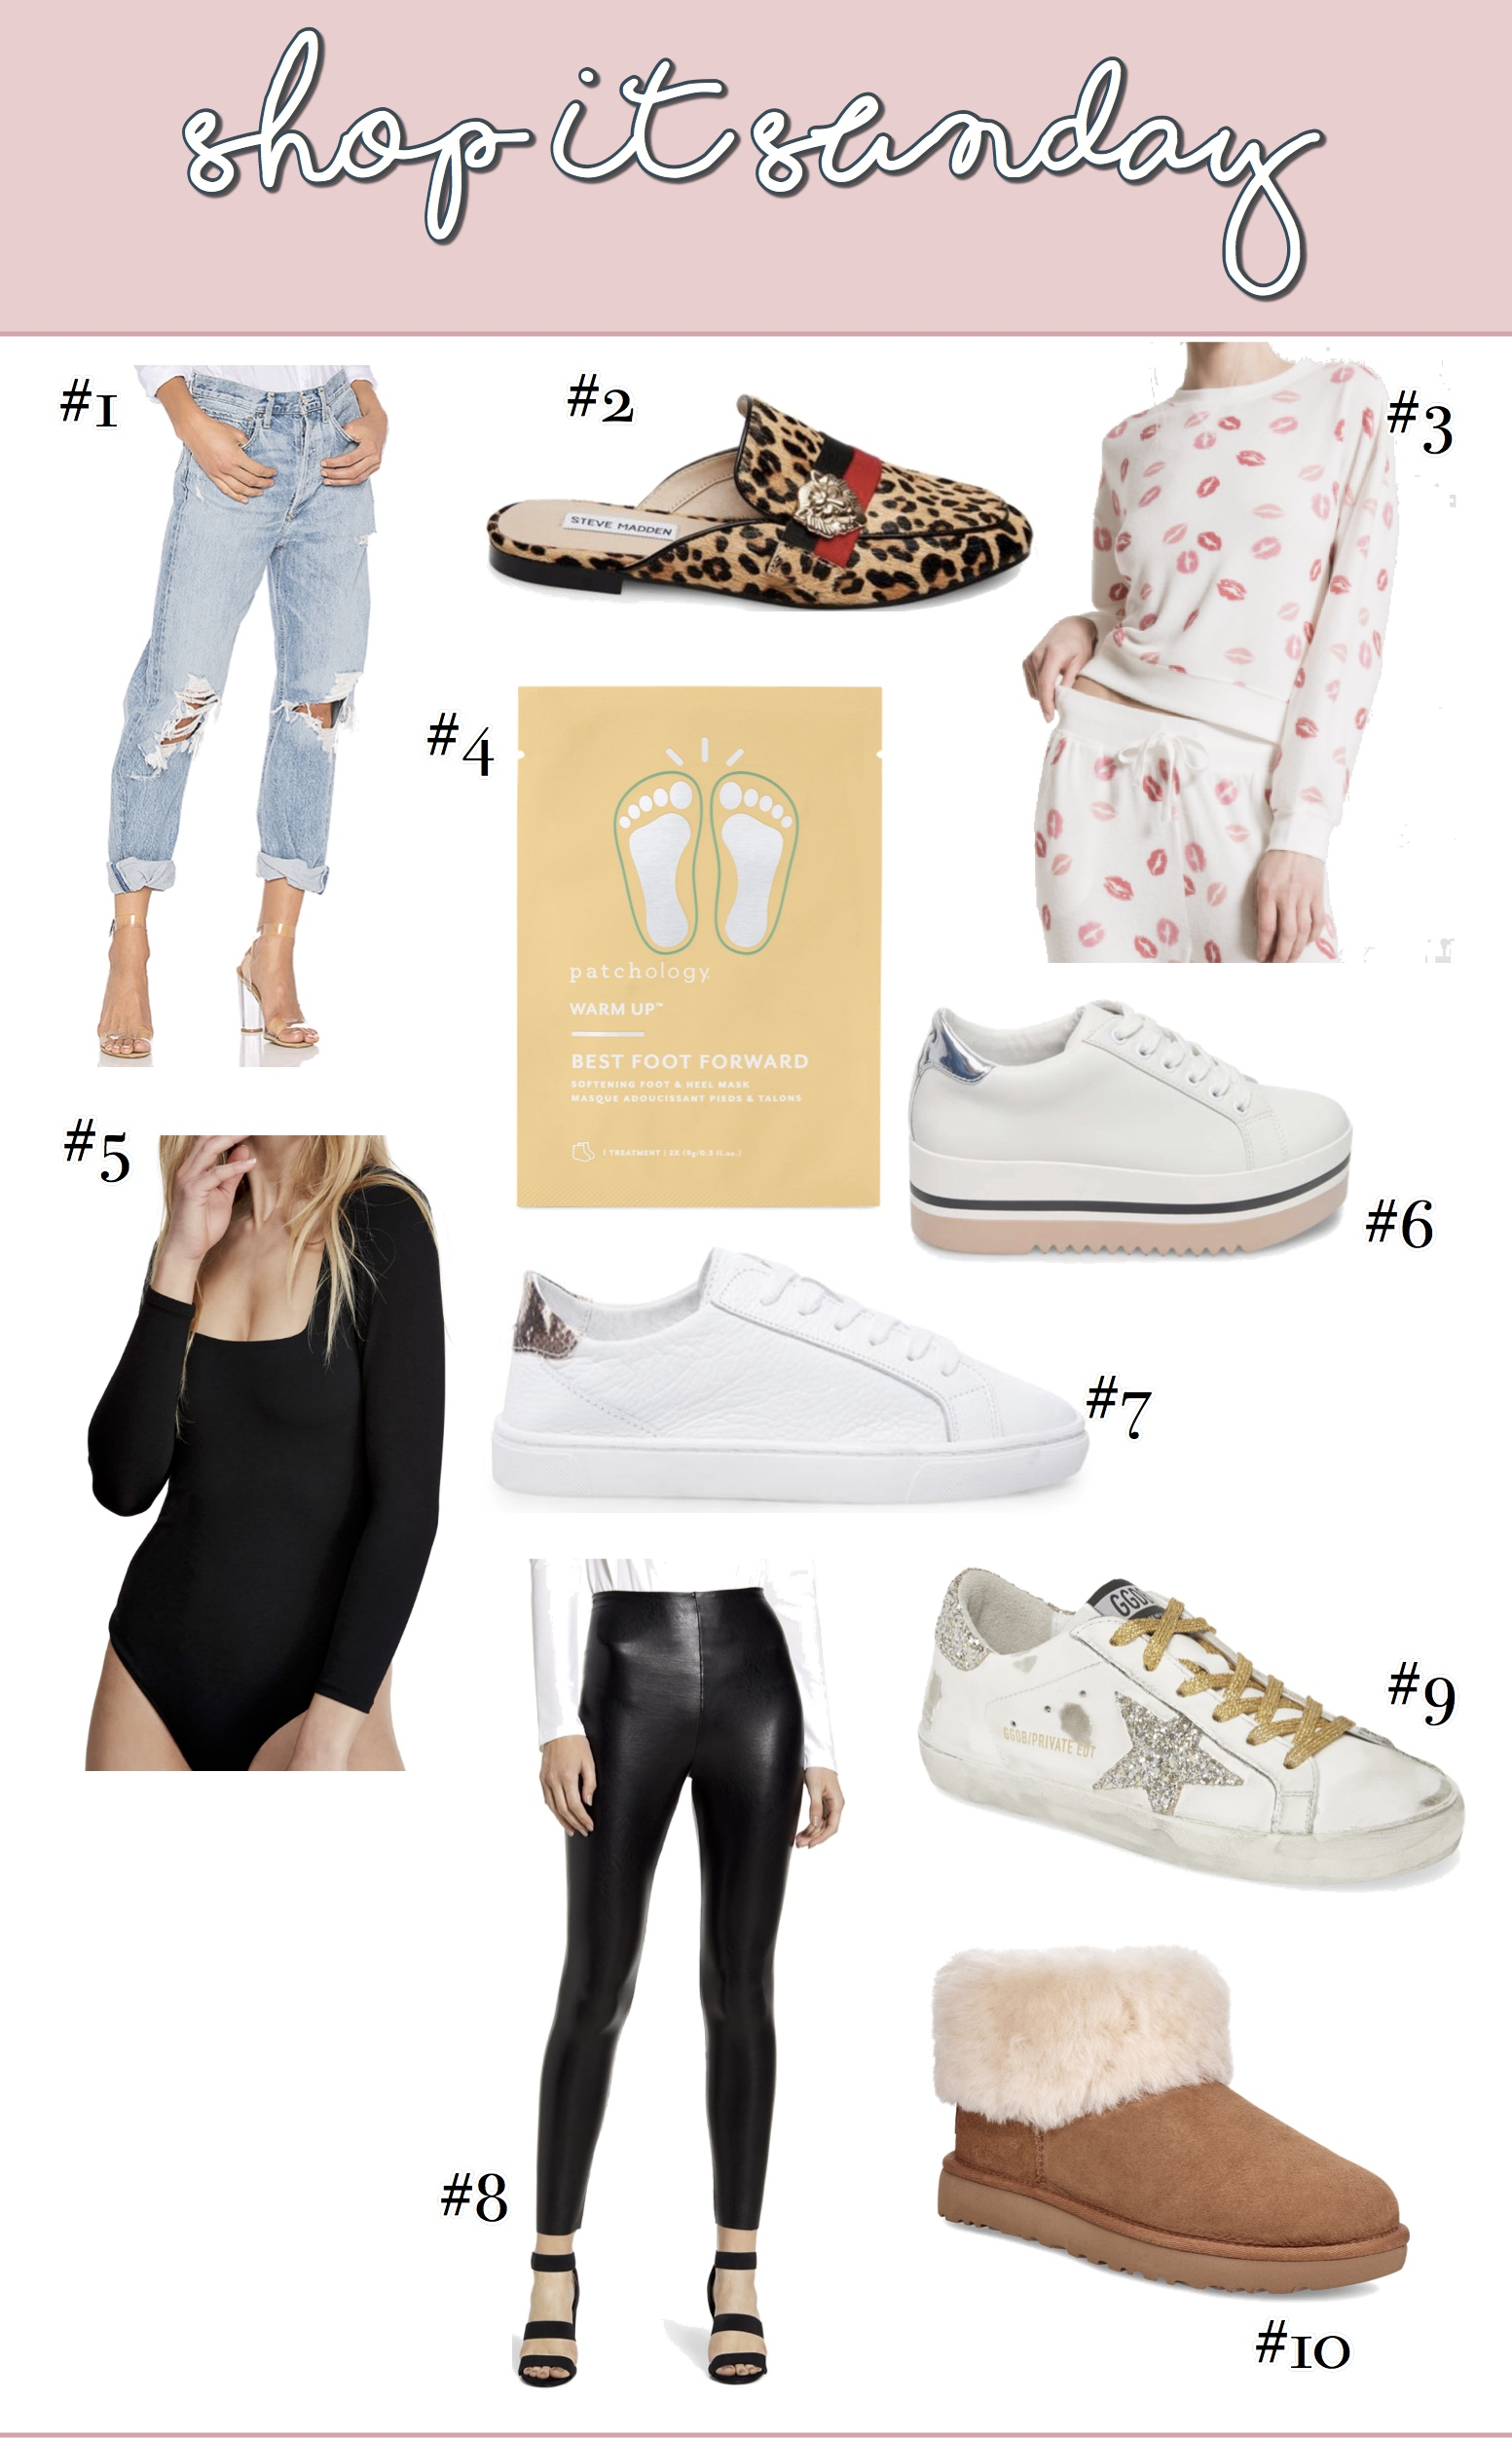 shopitsunday-emilygemma | Shop It Sunday // Readers Favorites From Last Week by popular Oklahoma fashion blog, The Sweetest Thing: image of Agolde jeans, Golden Goose Sneakers, Spanx faux leather leggings, Nordstrom Shearling bootie, black bodysuit, Lips loungewear pullover and drawstring pants, Patchology foot and heel mask, Steve Madden Platform sneakers, Steve Madden white sneakers with snake print,  and Steve Madden leopard slides.